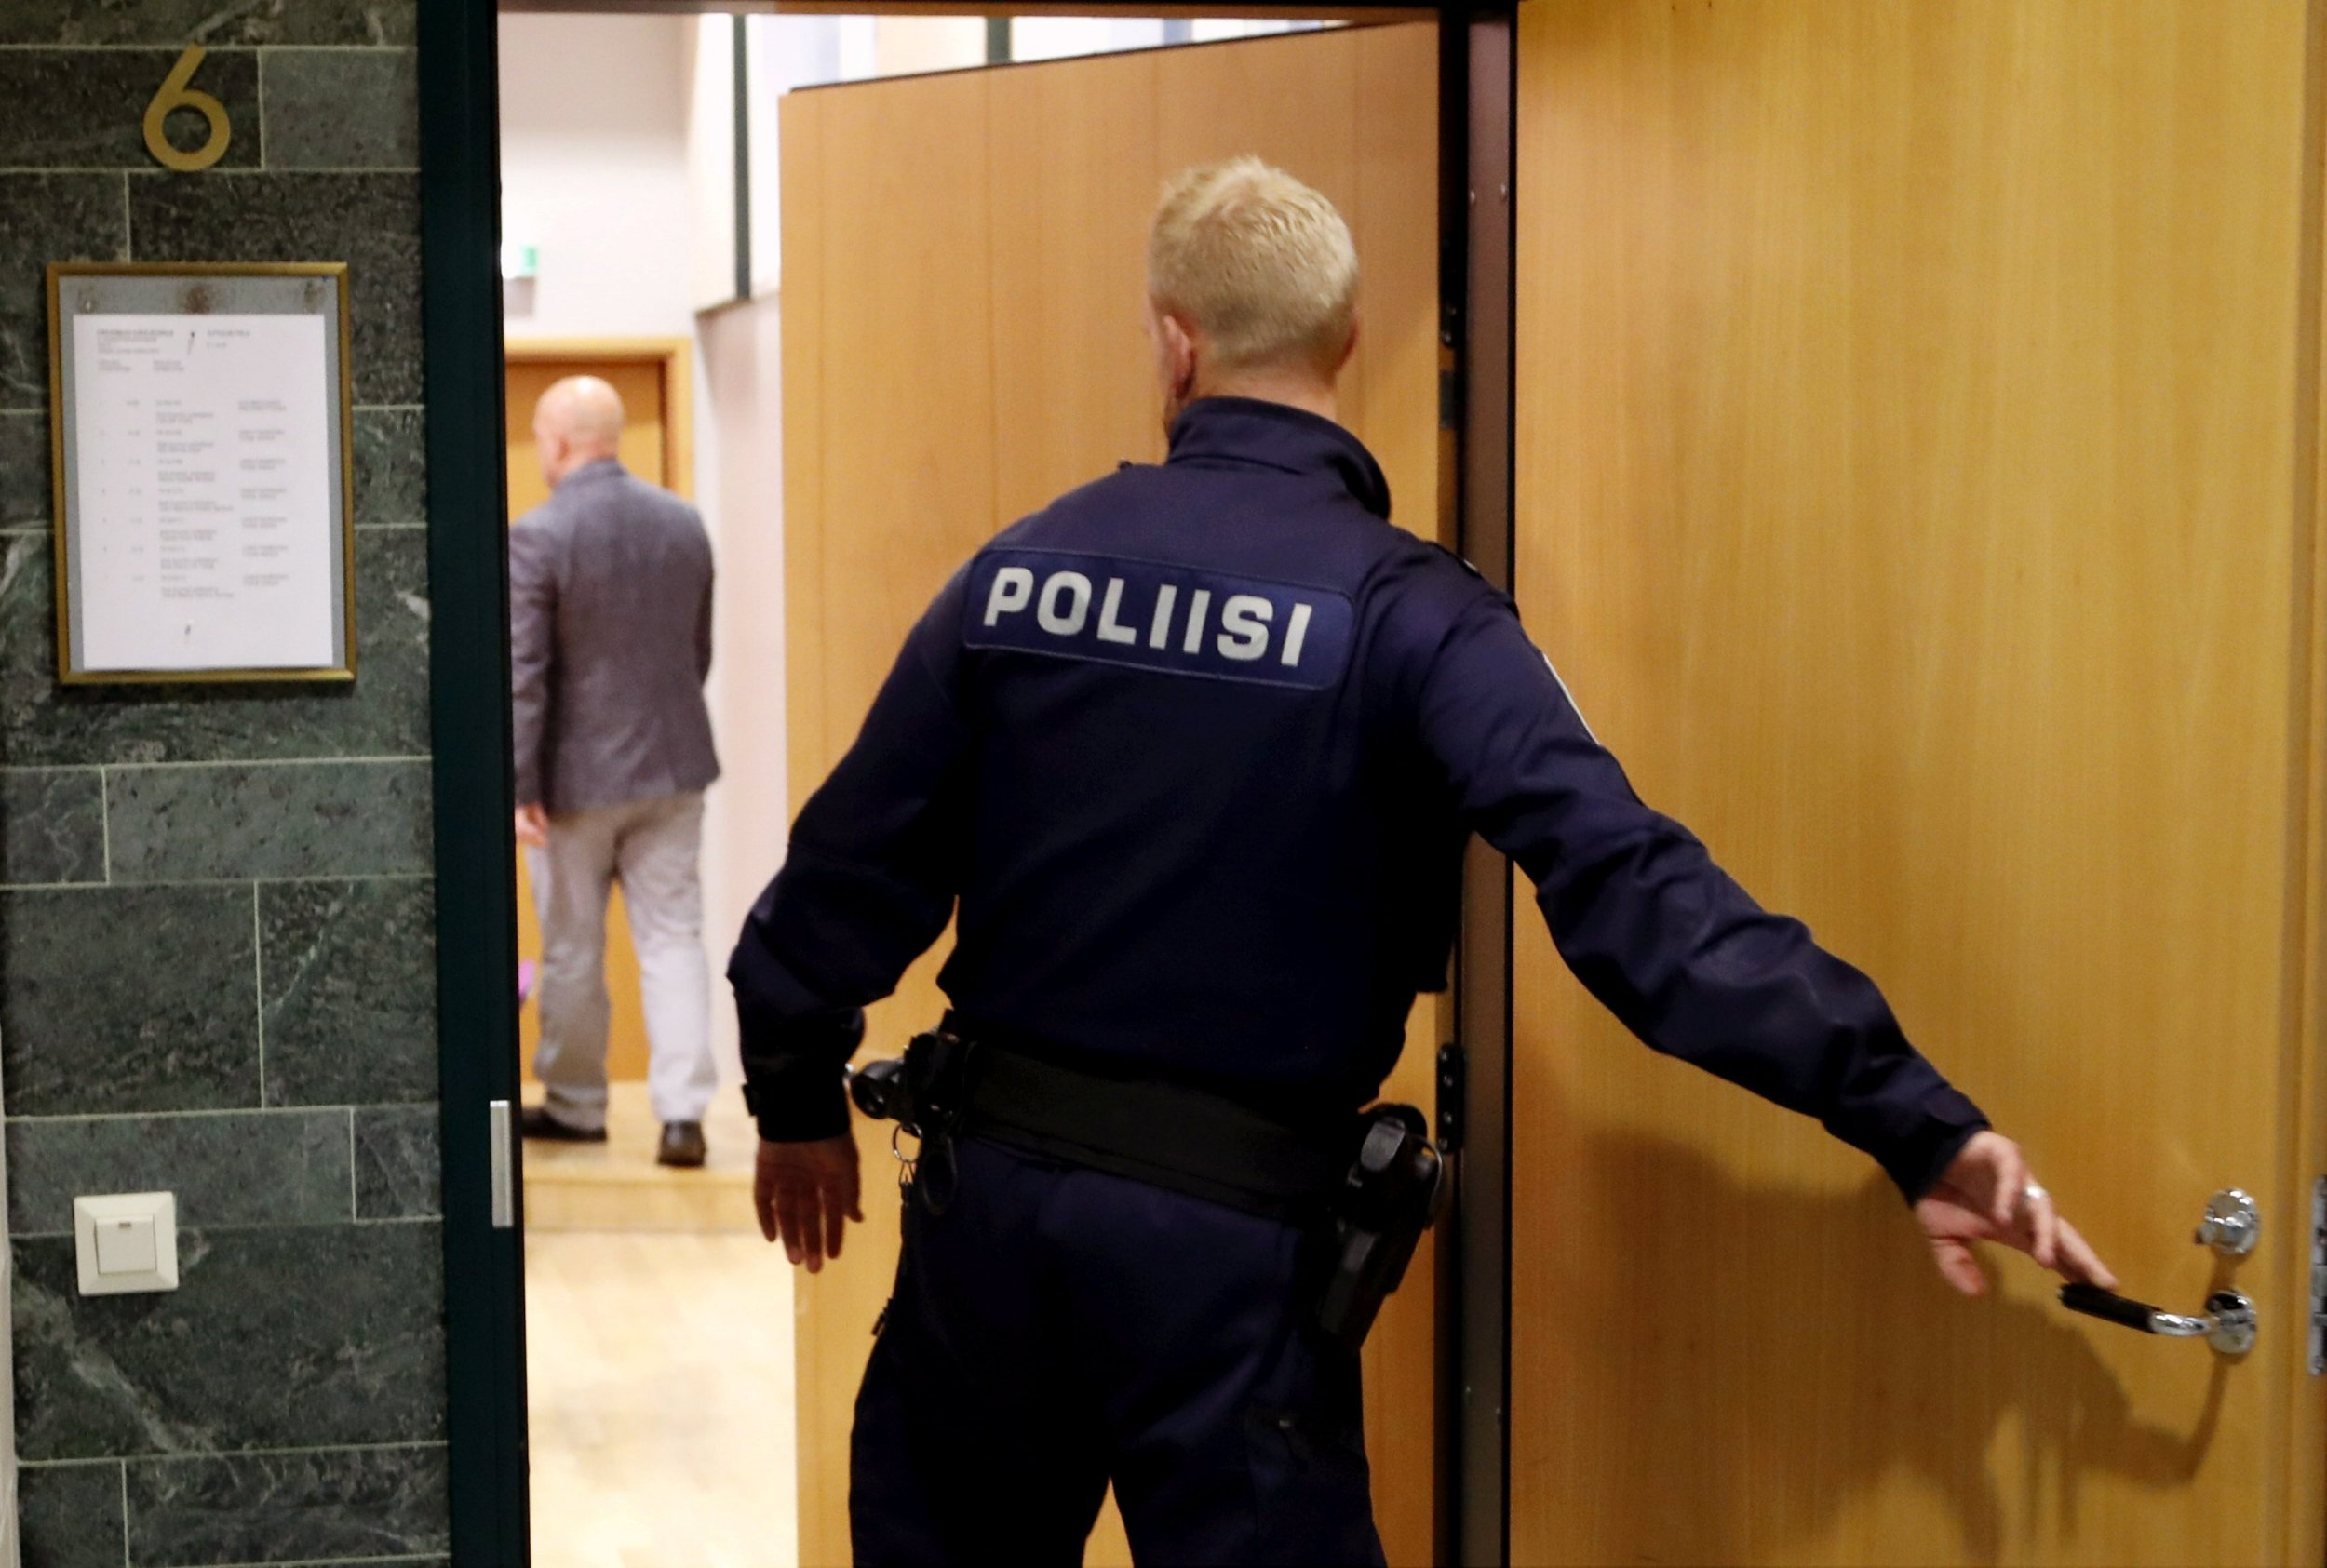 A police officer is photographed at the Pirkanmaa district court where a hearing for the case of six Cuban volleyball players suspected of an aggravated rape takes place in Tampere, Finland July 5th 2016. The suspected felony is said to have taken place in the night between 2nd and 3rd of July in Tampere. Lehtikuva/Kalle Parkkinen/via REUTERS    ATTENTION EDITORS - THIS IMAGE WAS PROVIDED BY A THIRD PARTY. FOR EDITORIAL USE ONLY. NO THIRD PARTY SALES. NOT FOR USE BY REUTERS THIRD PARTY DISTRIBUTORS. FINLAND OUT. NO COMMERCIAL OR EDITORIAL SALES IN FINLAND.